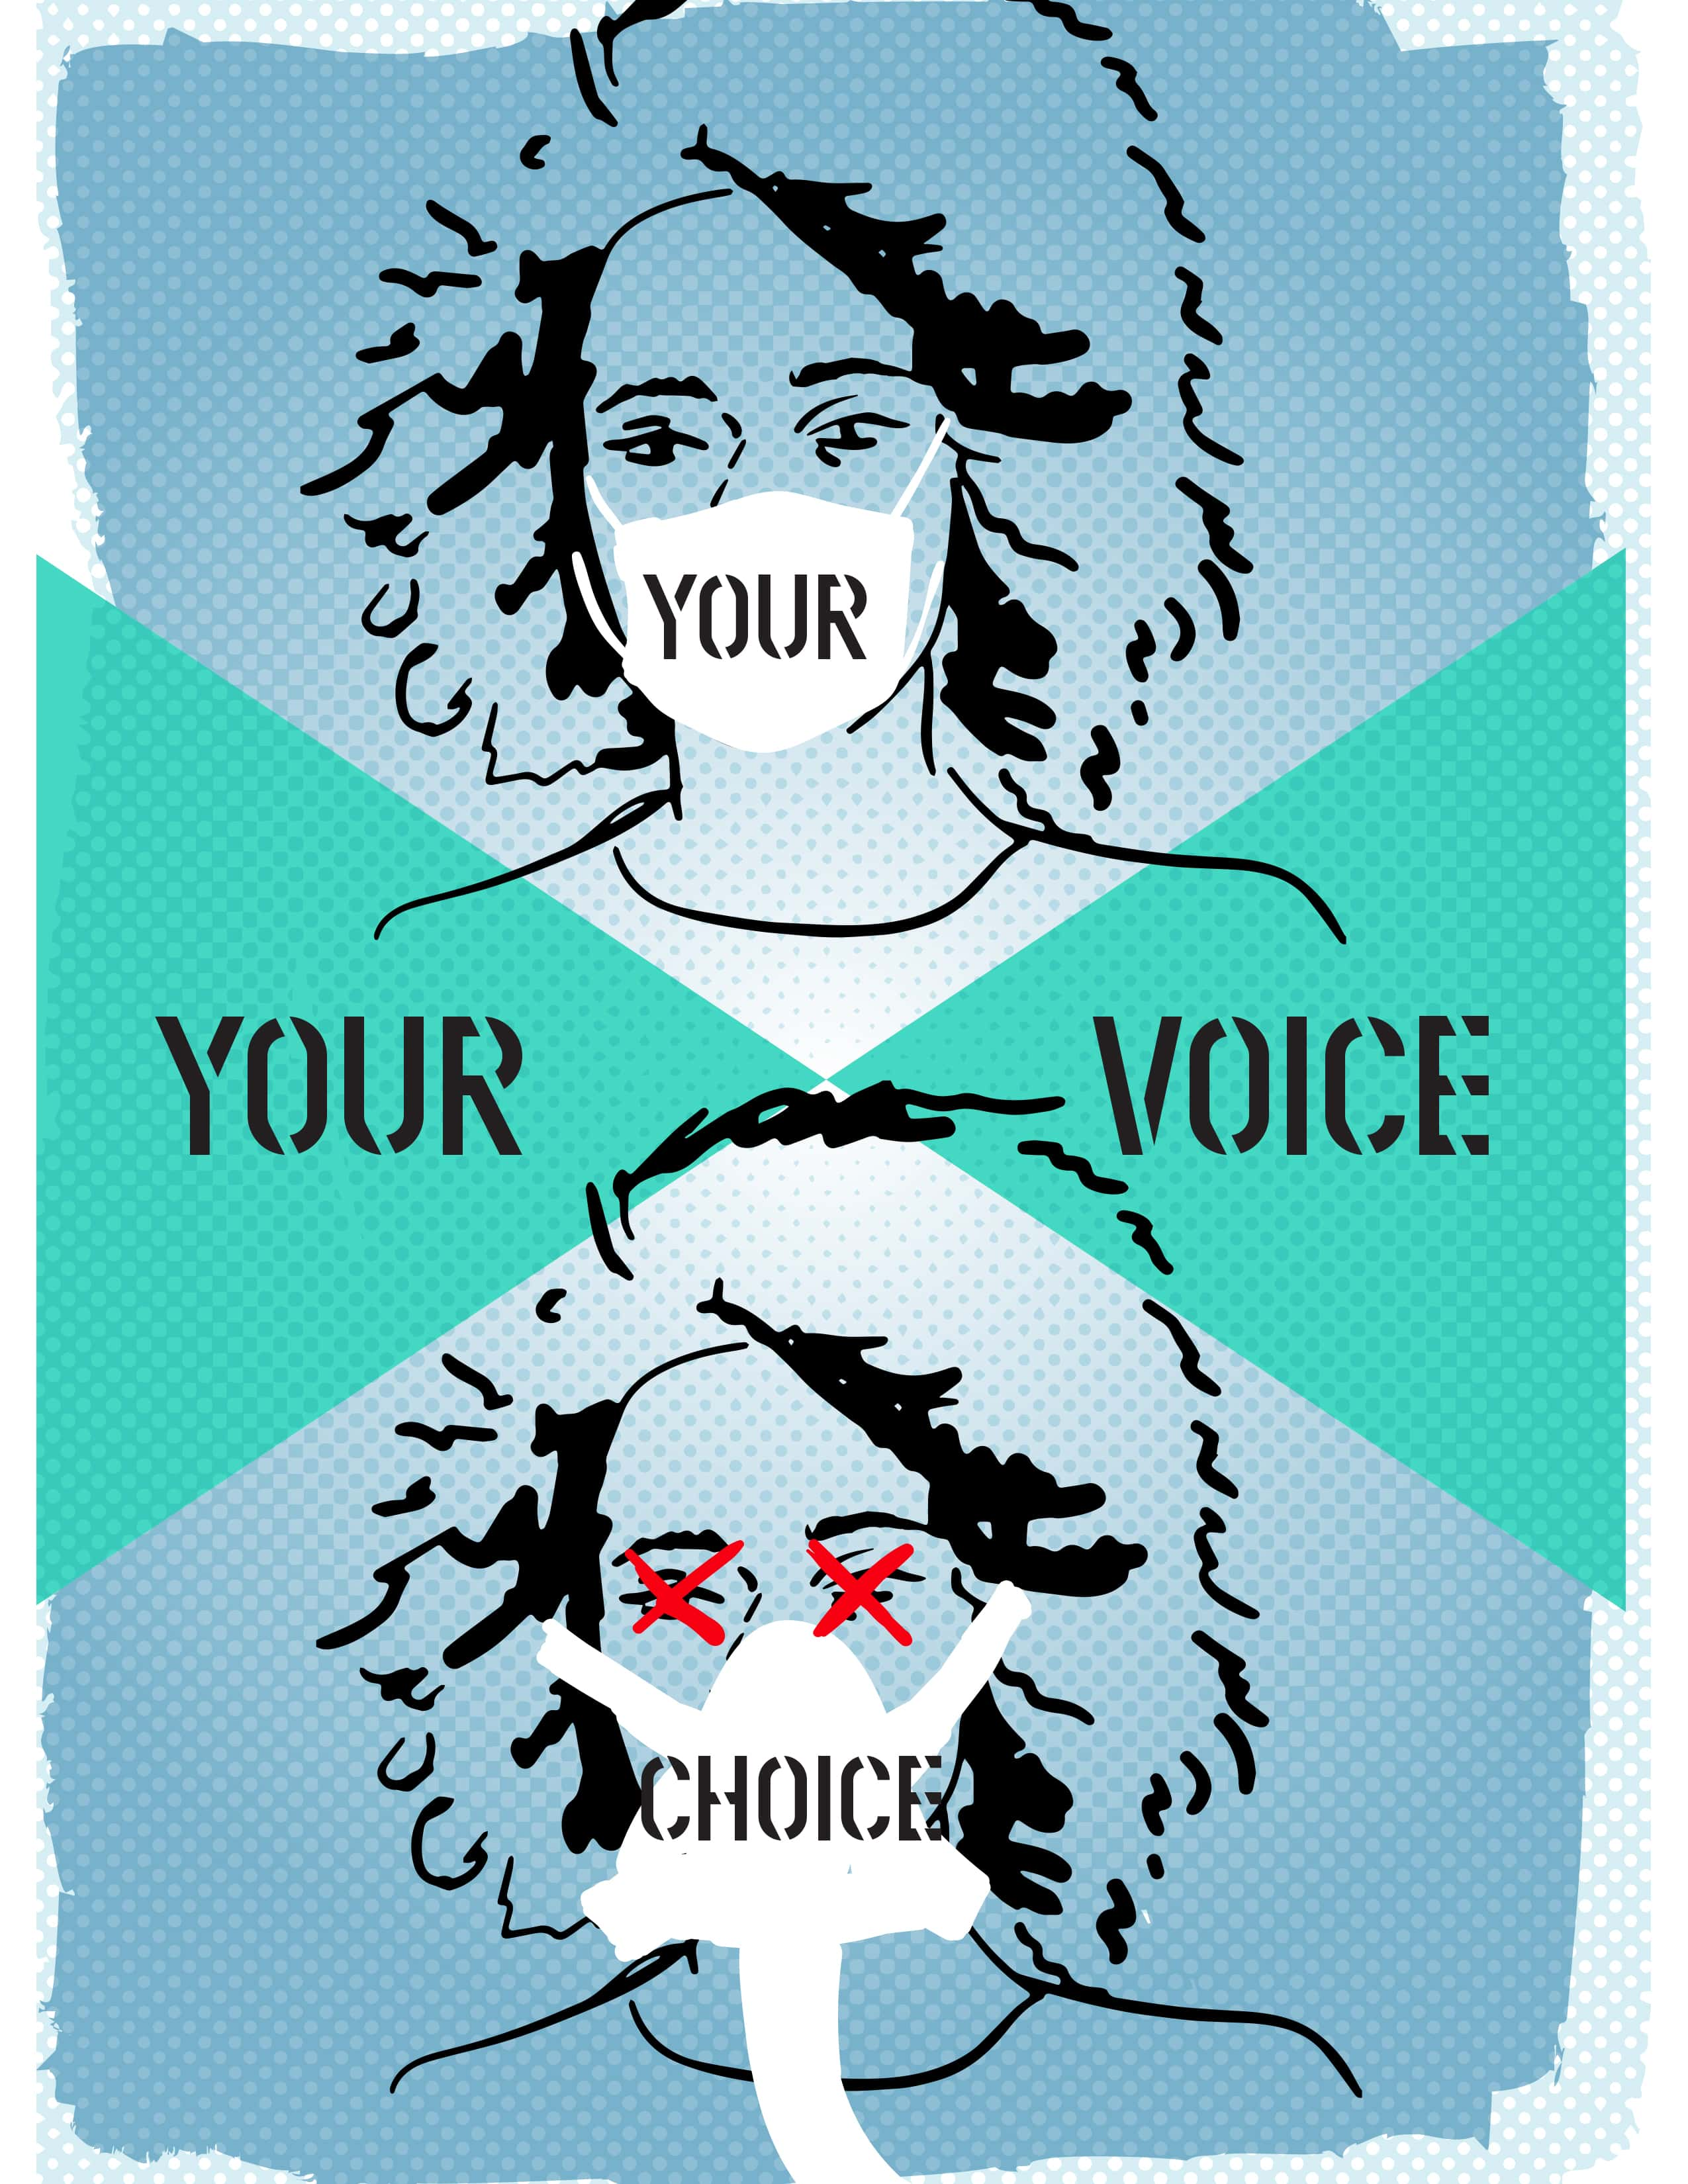 Your-Choice-Your-Voice-Flyer-3.jpg